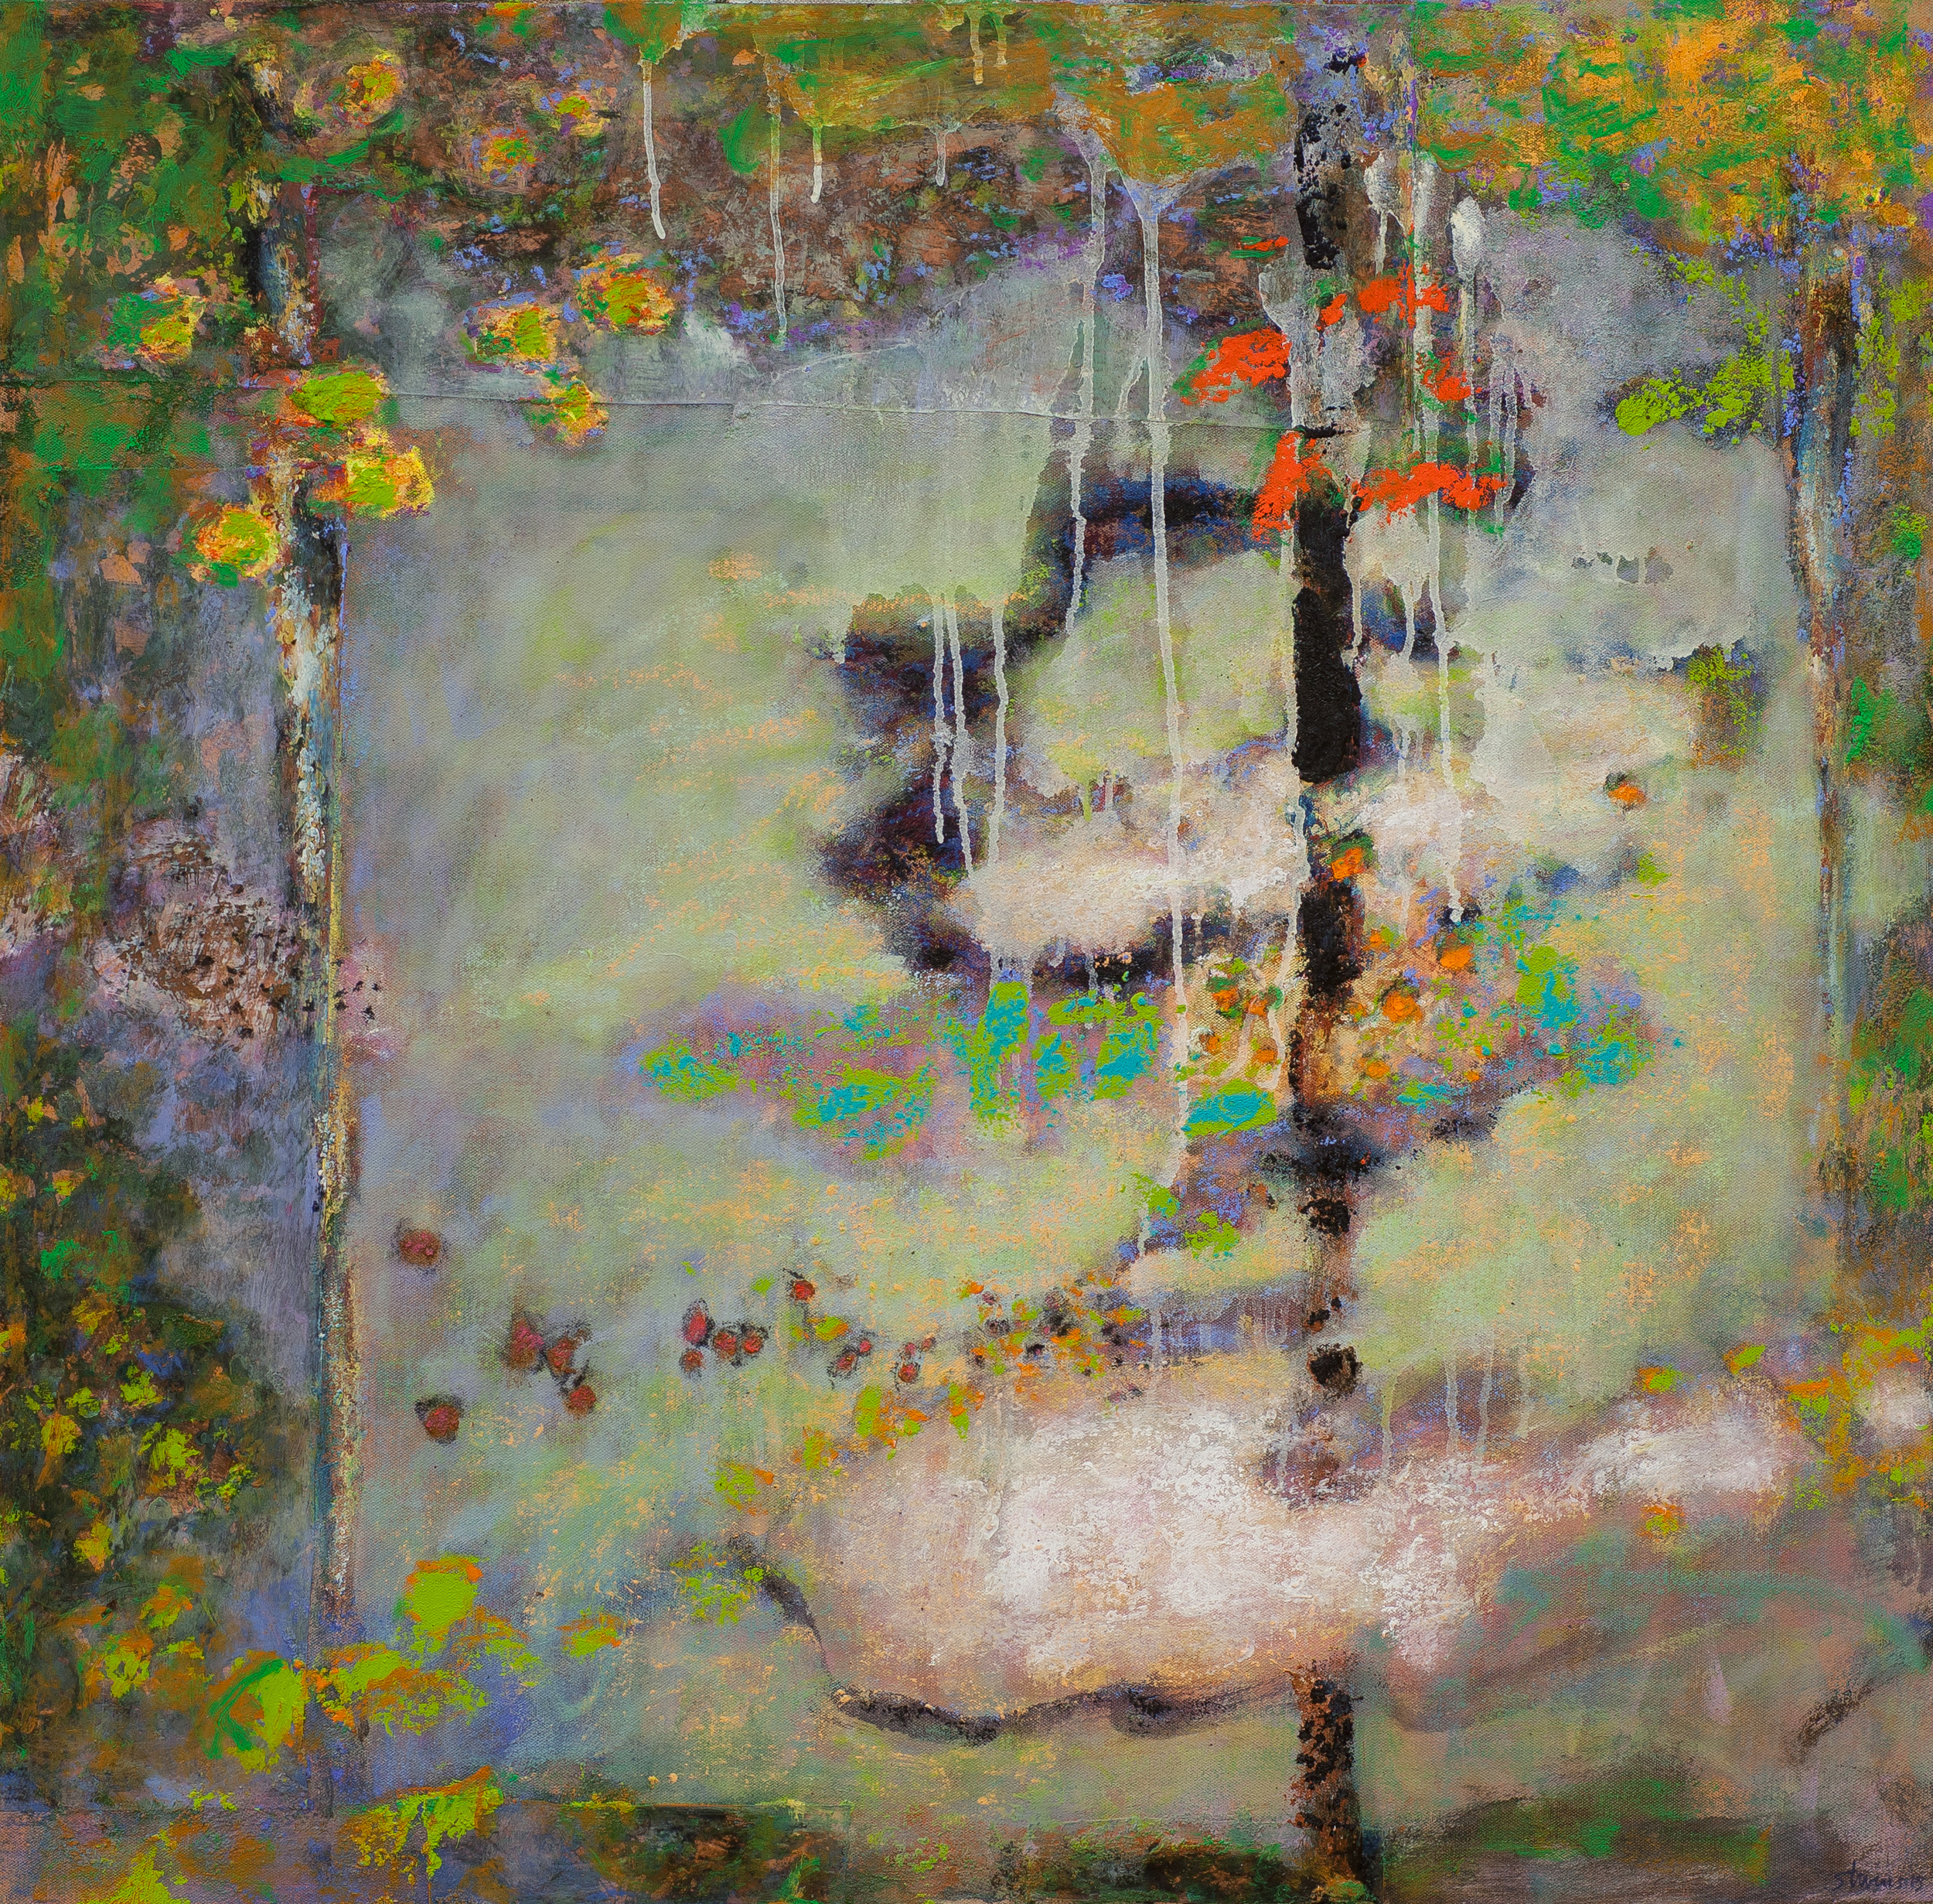 Adrift in the Ether Sphere   | oil on canvas | 32 x 31"